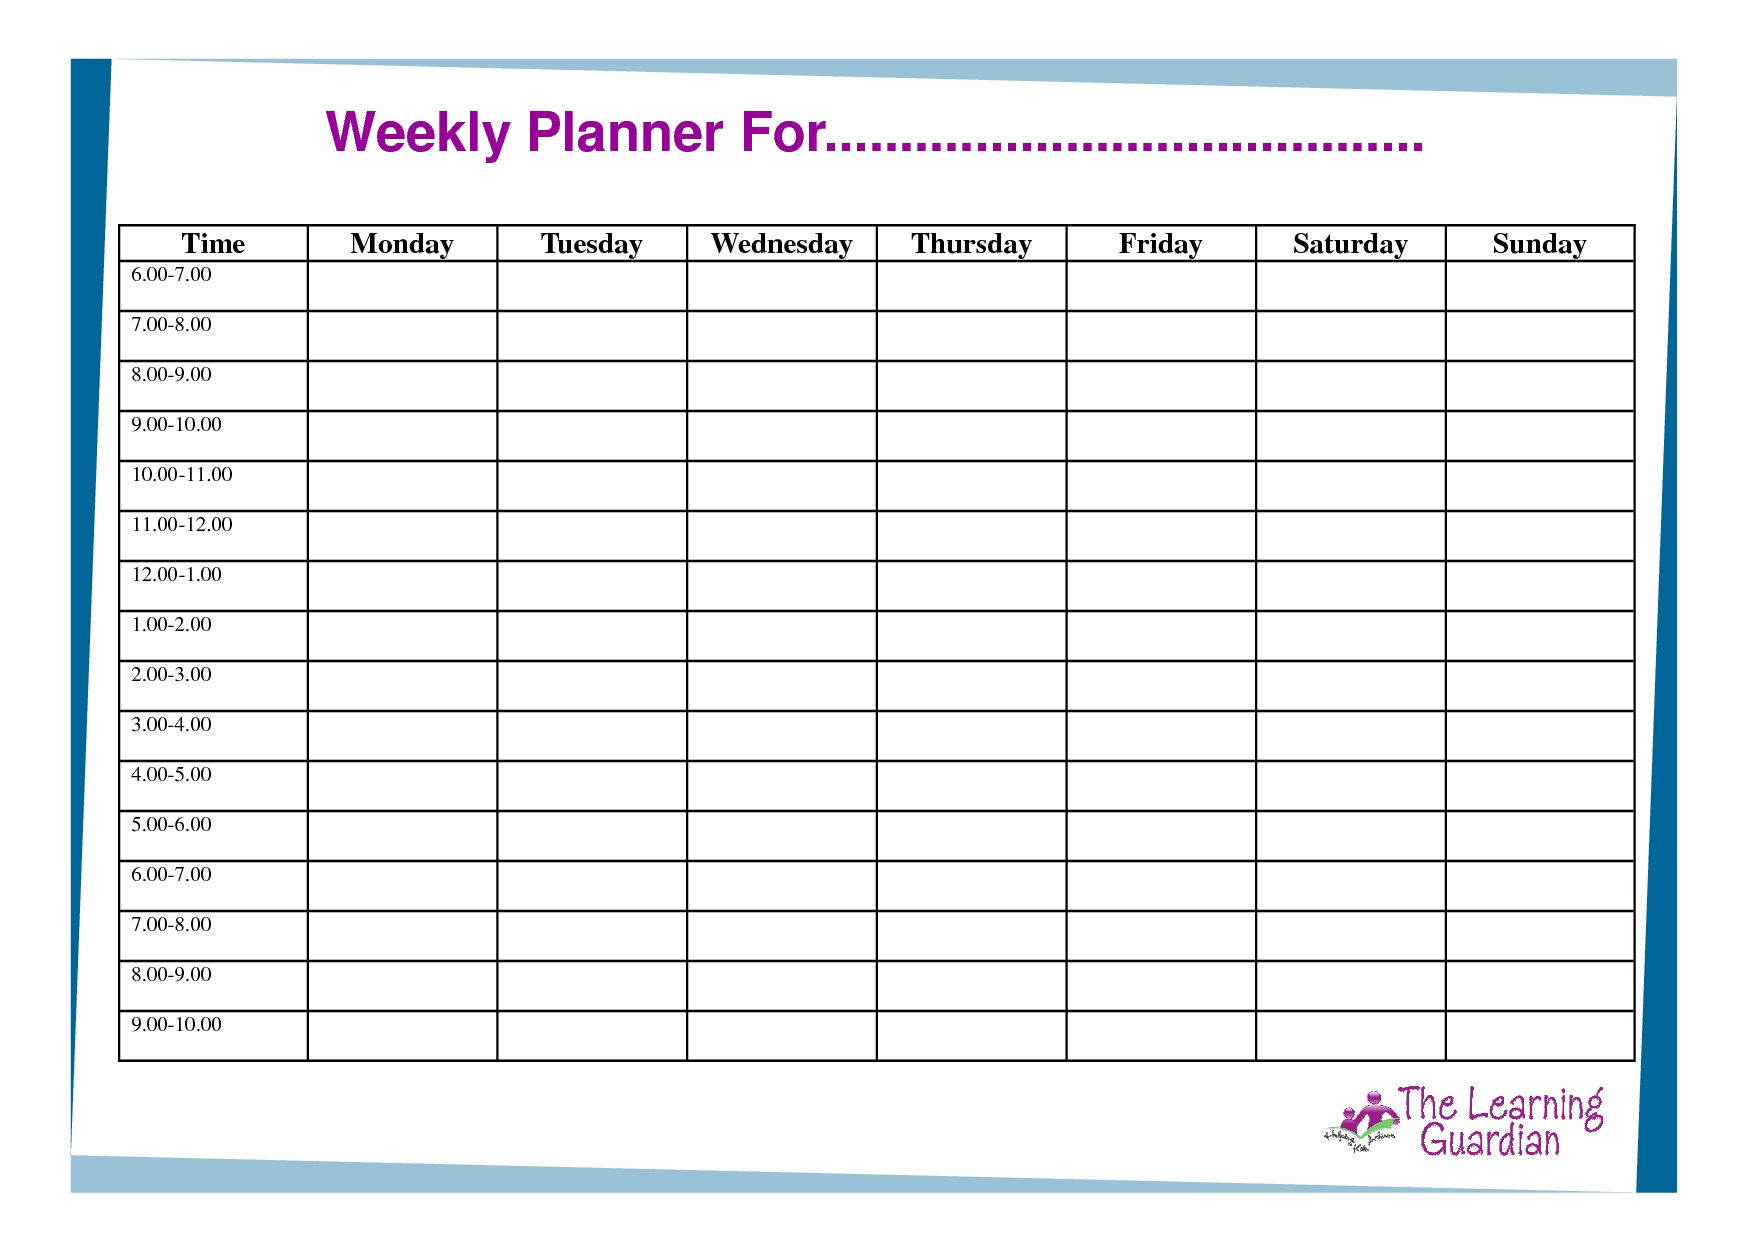 Free Printable Weekly Calendar Templates | Weekly Planner For Time with regard to Monday - Friday Planner Template